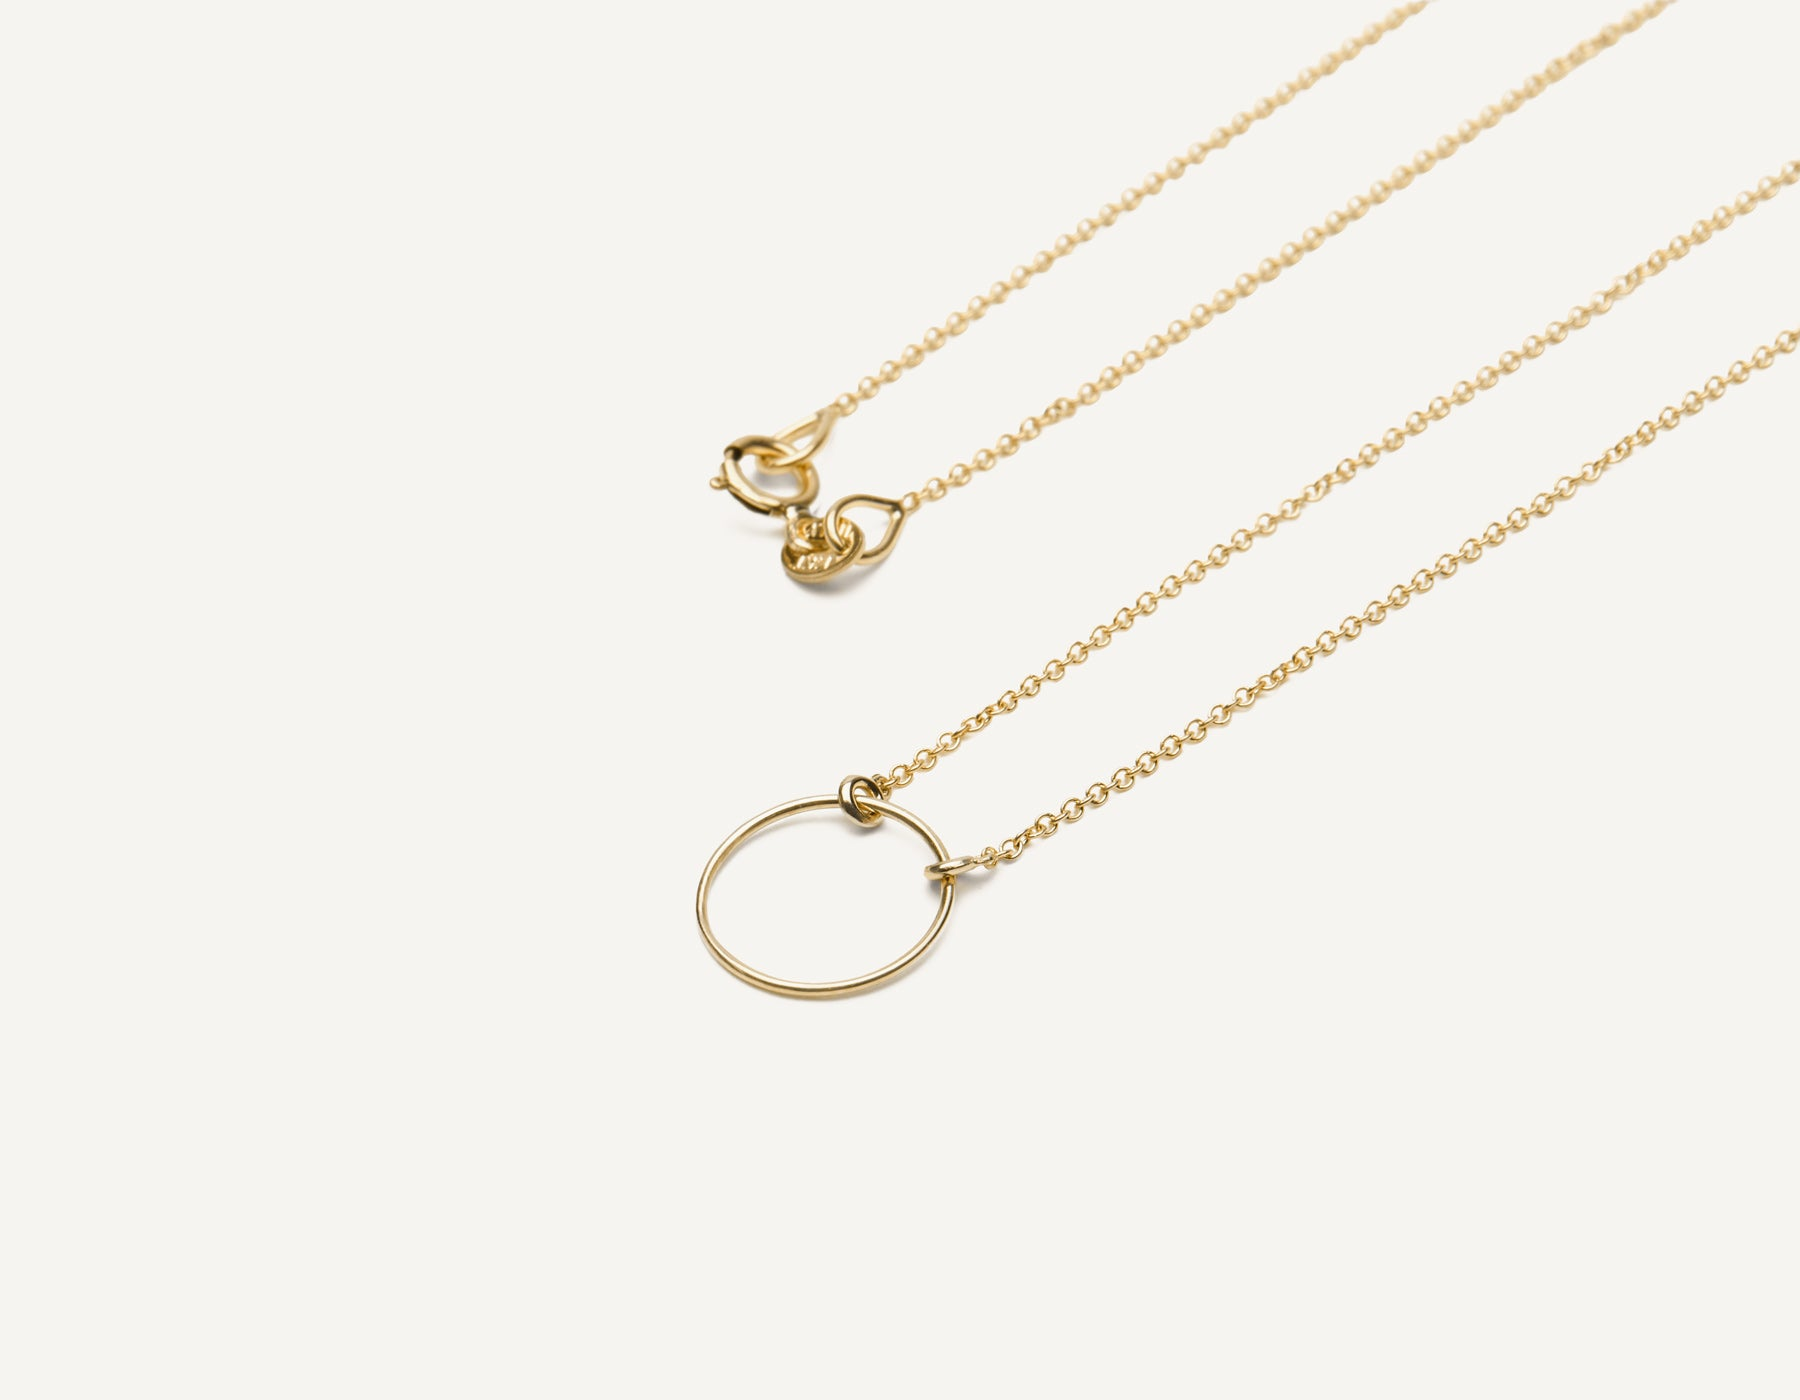 Delicate minimalist 14k solid gold wire Circle Necklace with spring ring clasp by Vrai & Oro handcrafted jewelry, 14K Yellow Gold